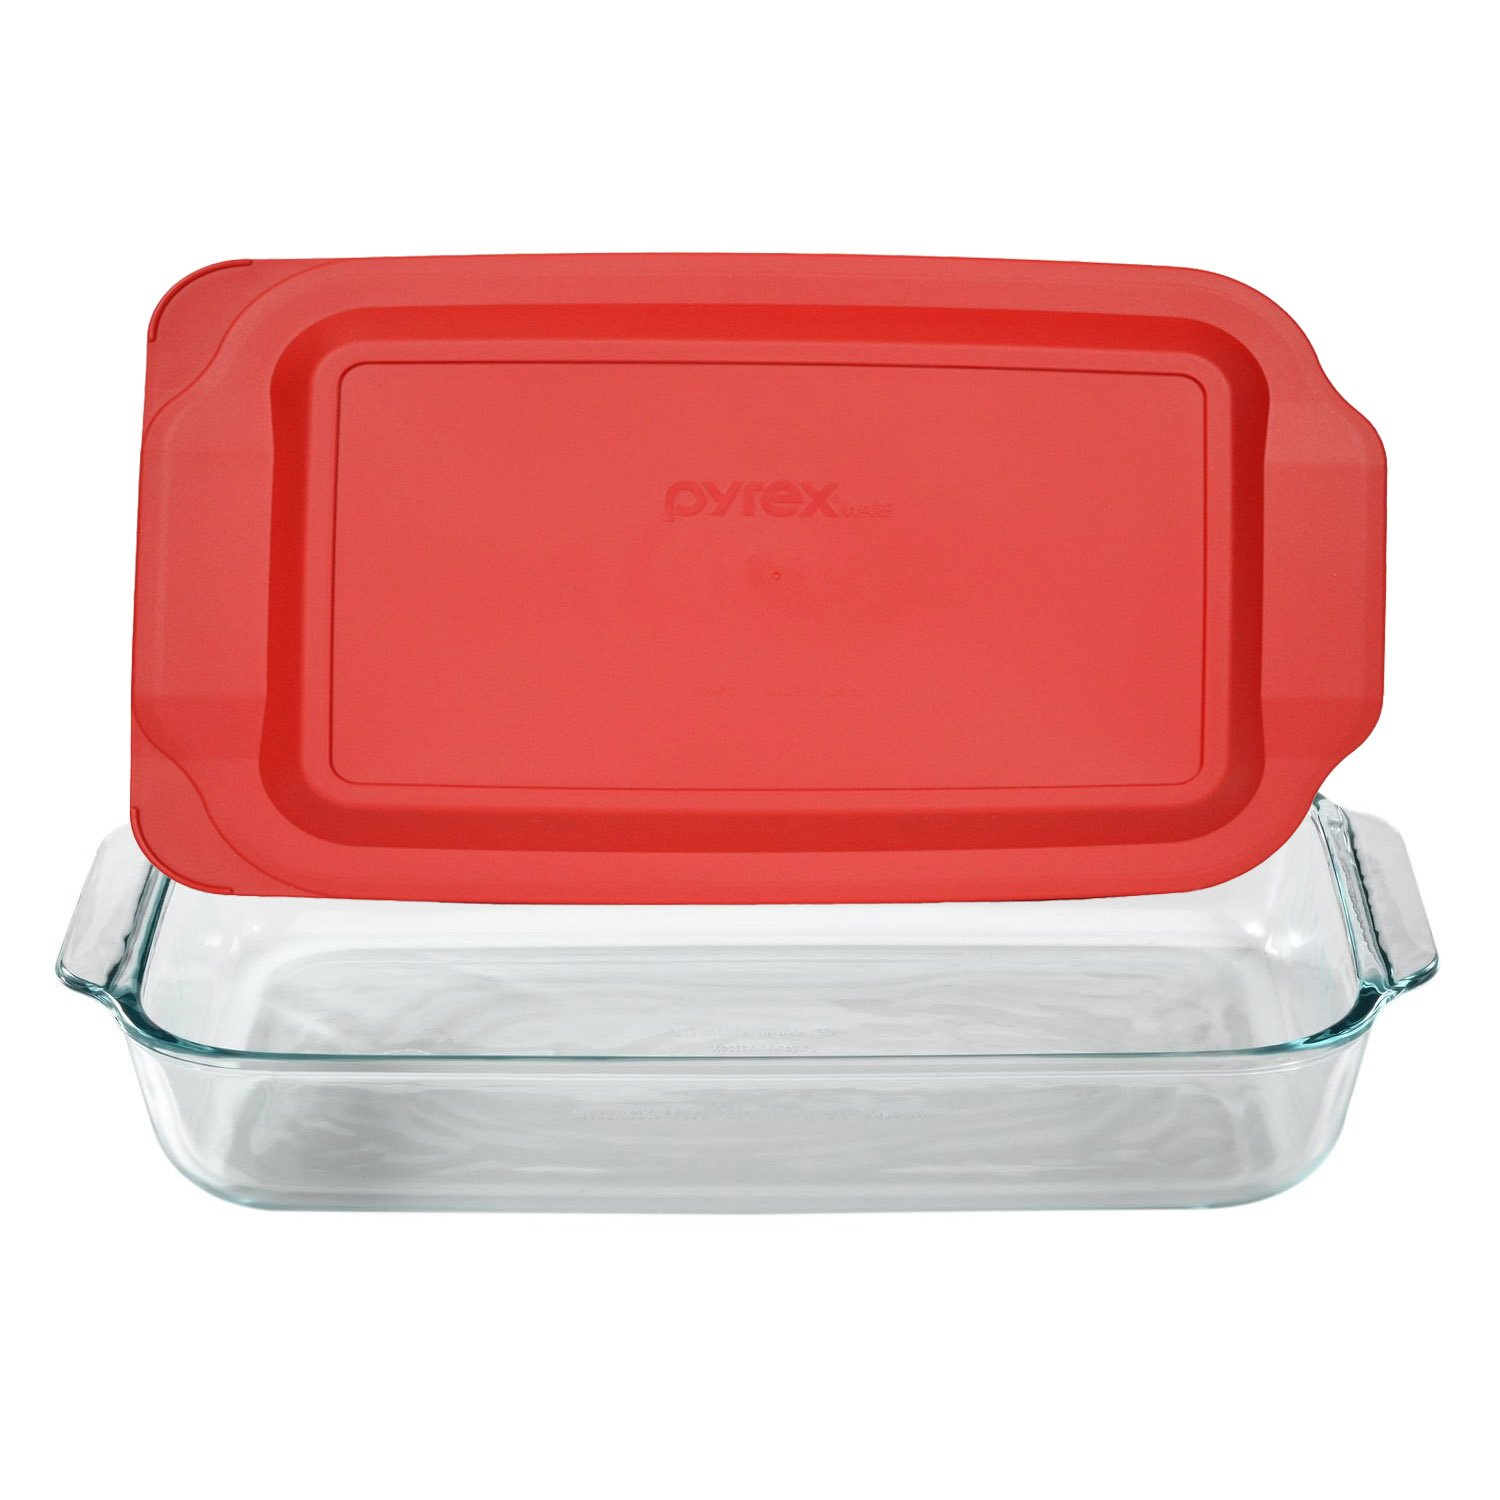 Pyrex Basics 3 Quart Glass Oblong Baking Dish with Red